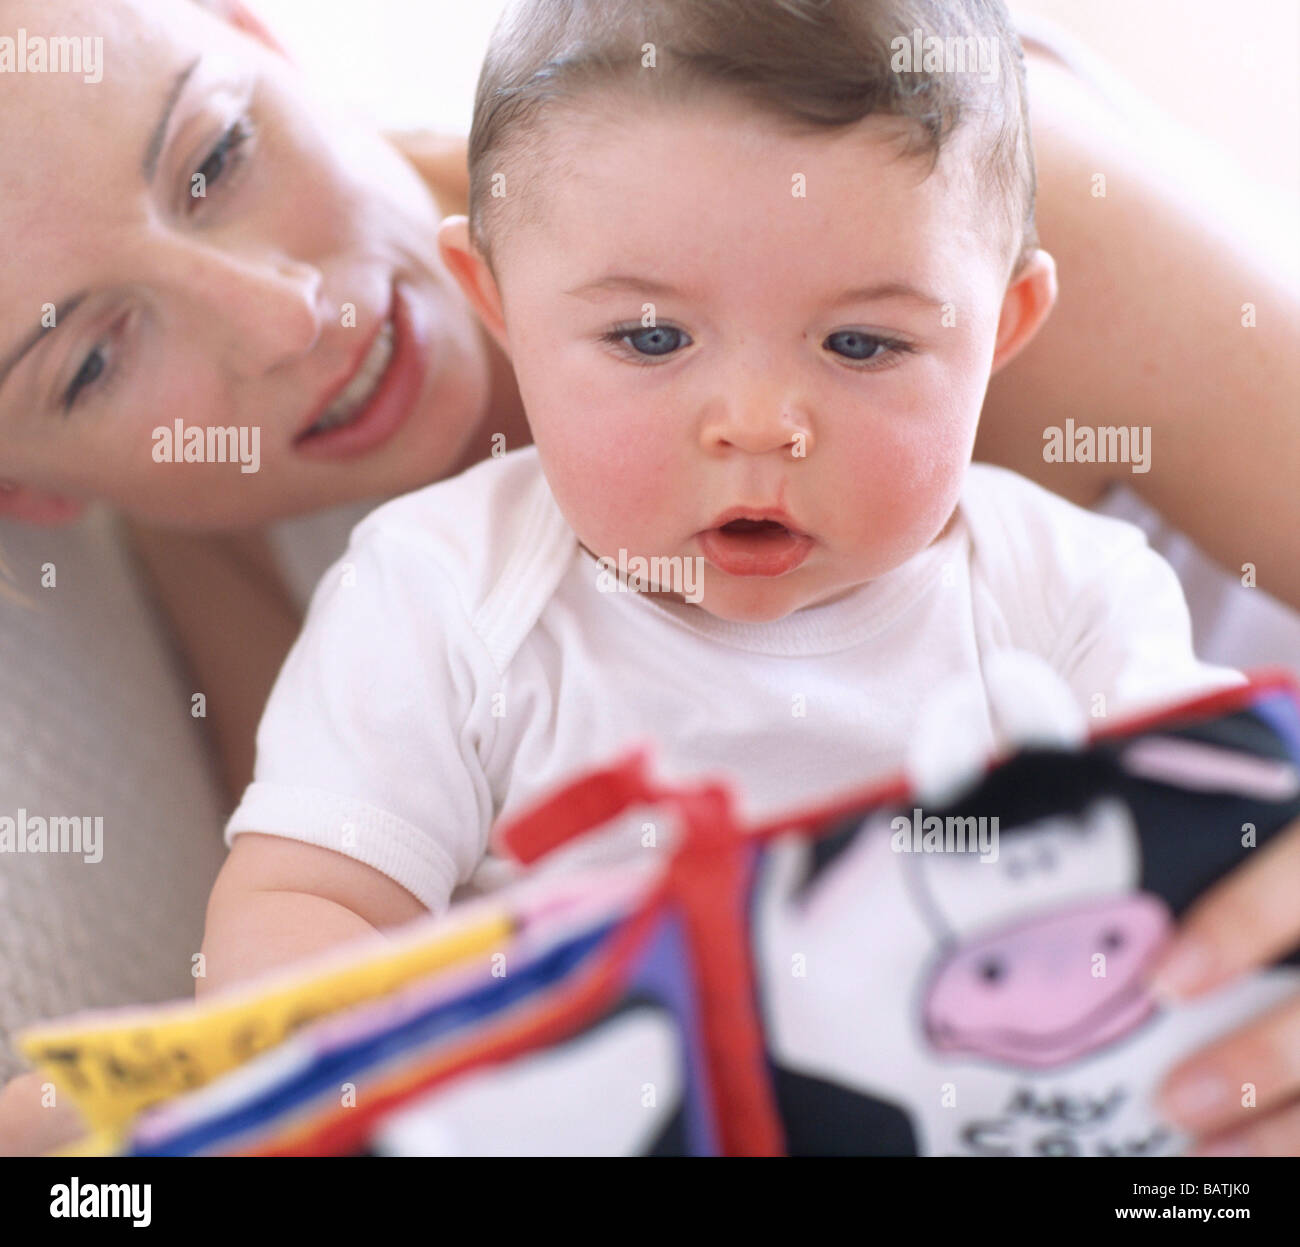 Mother reading to baby boy.Faces of a mother and her 6 monthsold baby boy as she reads aloud to him. - Stock Image